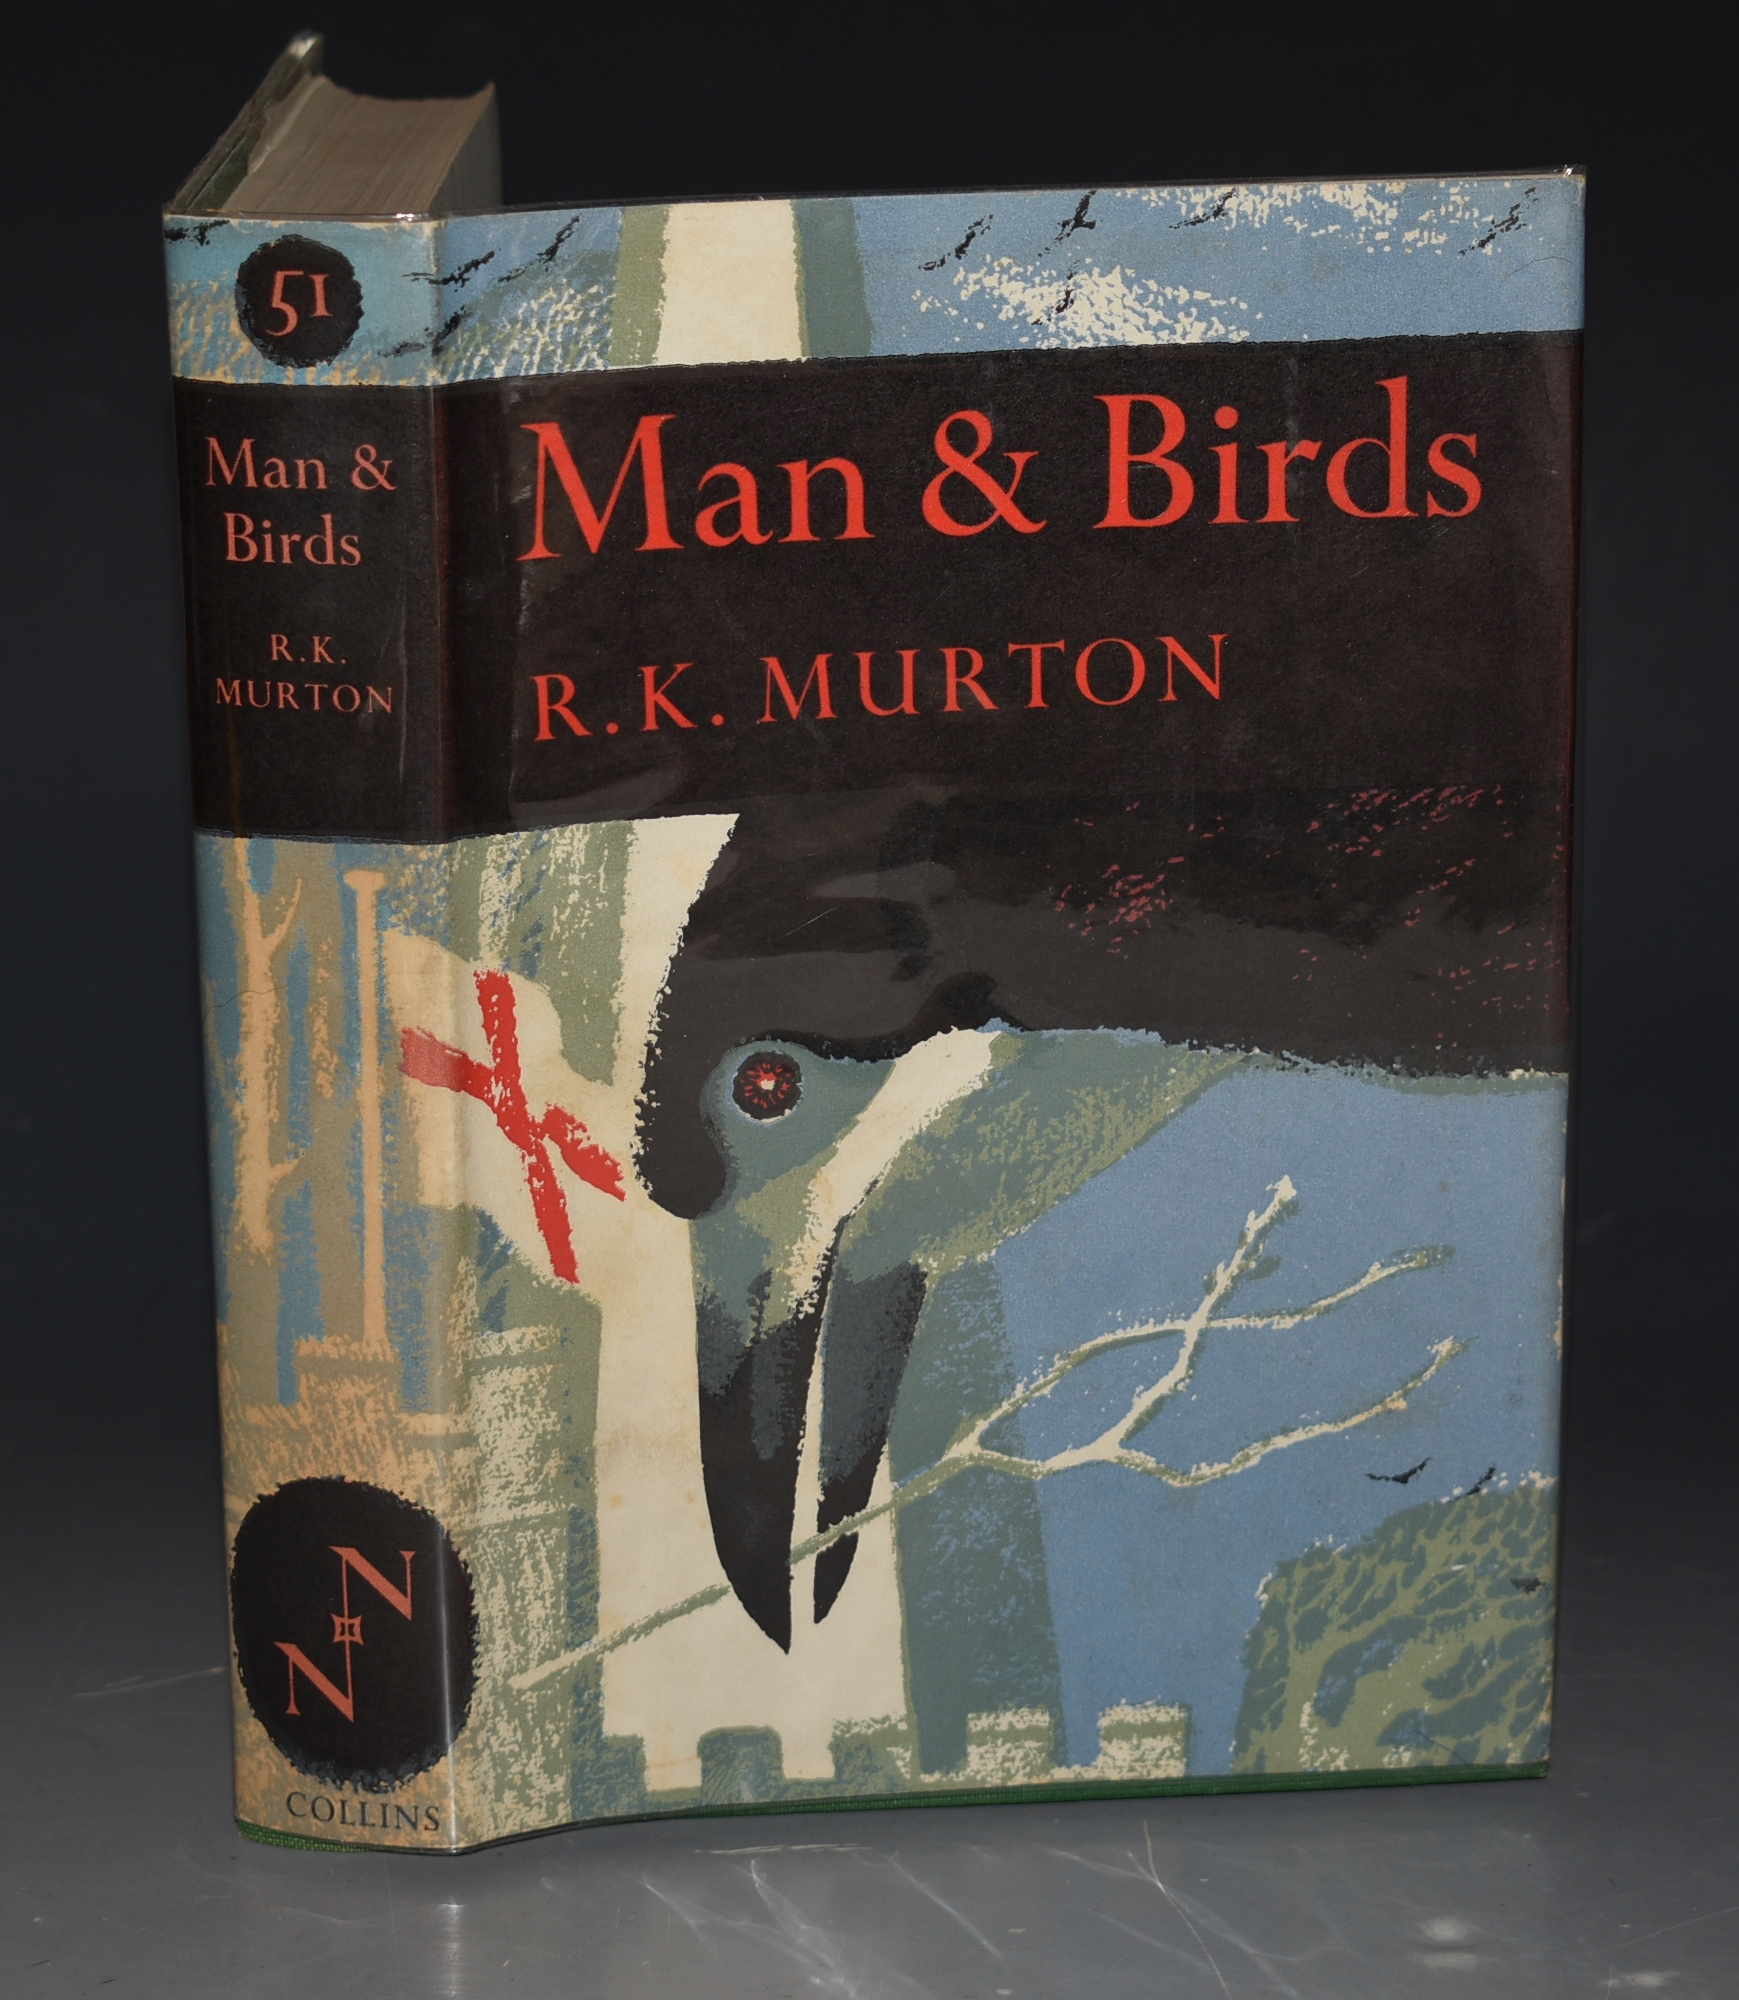 Image for Man & Birds. (The New Naturalist 51).